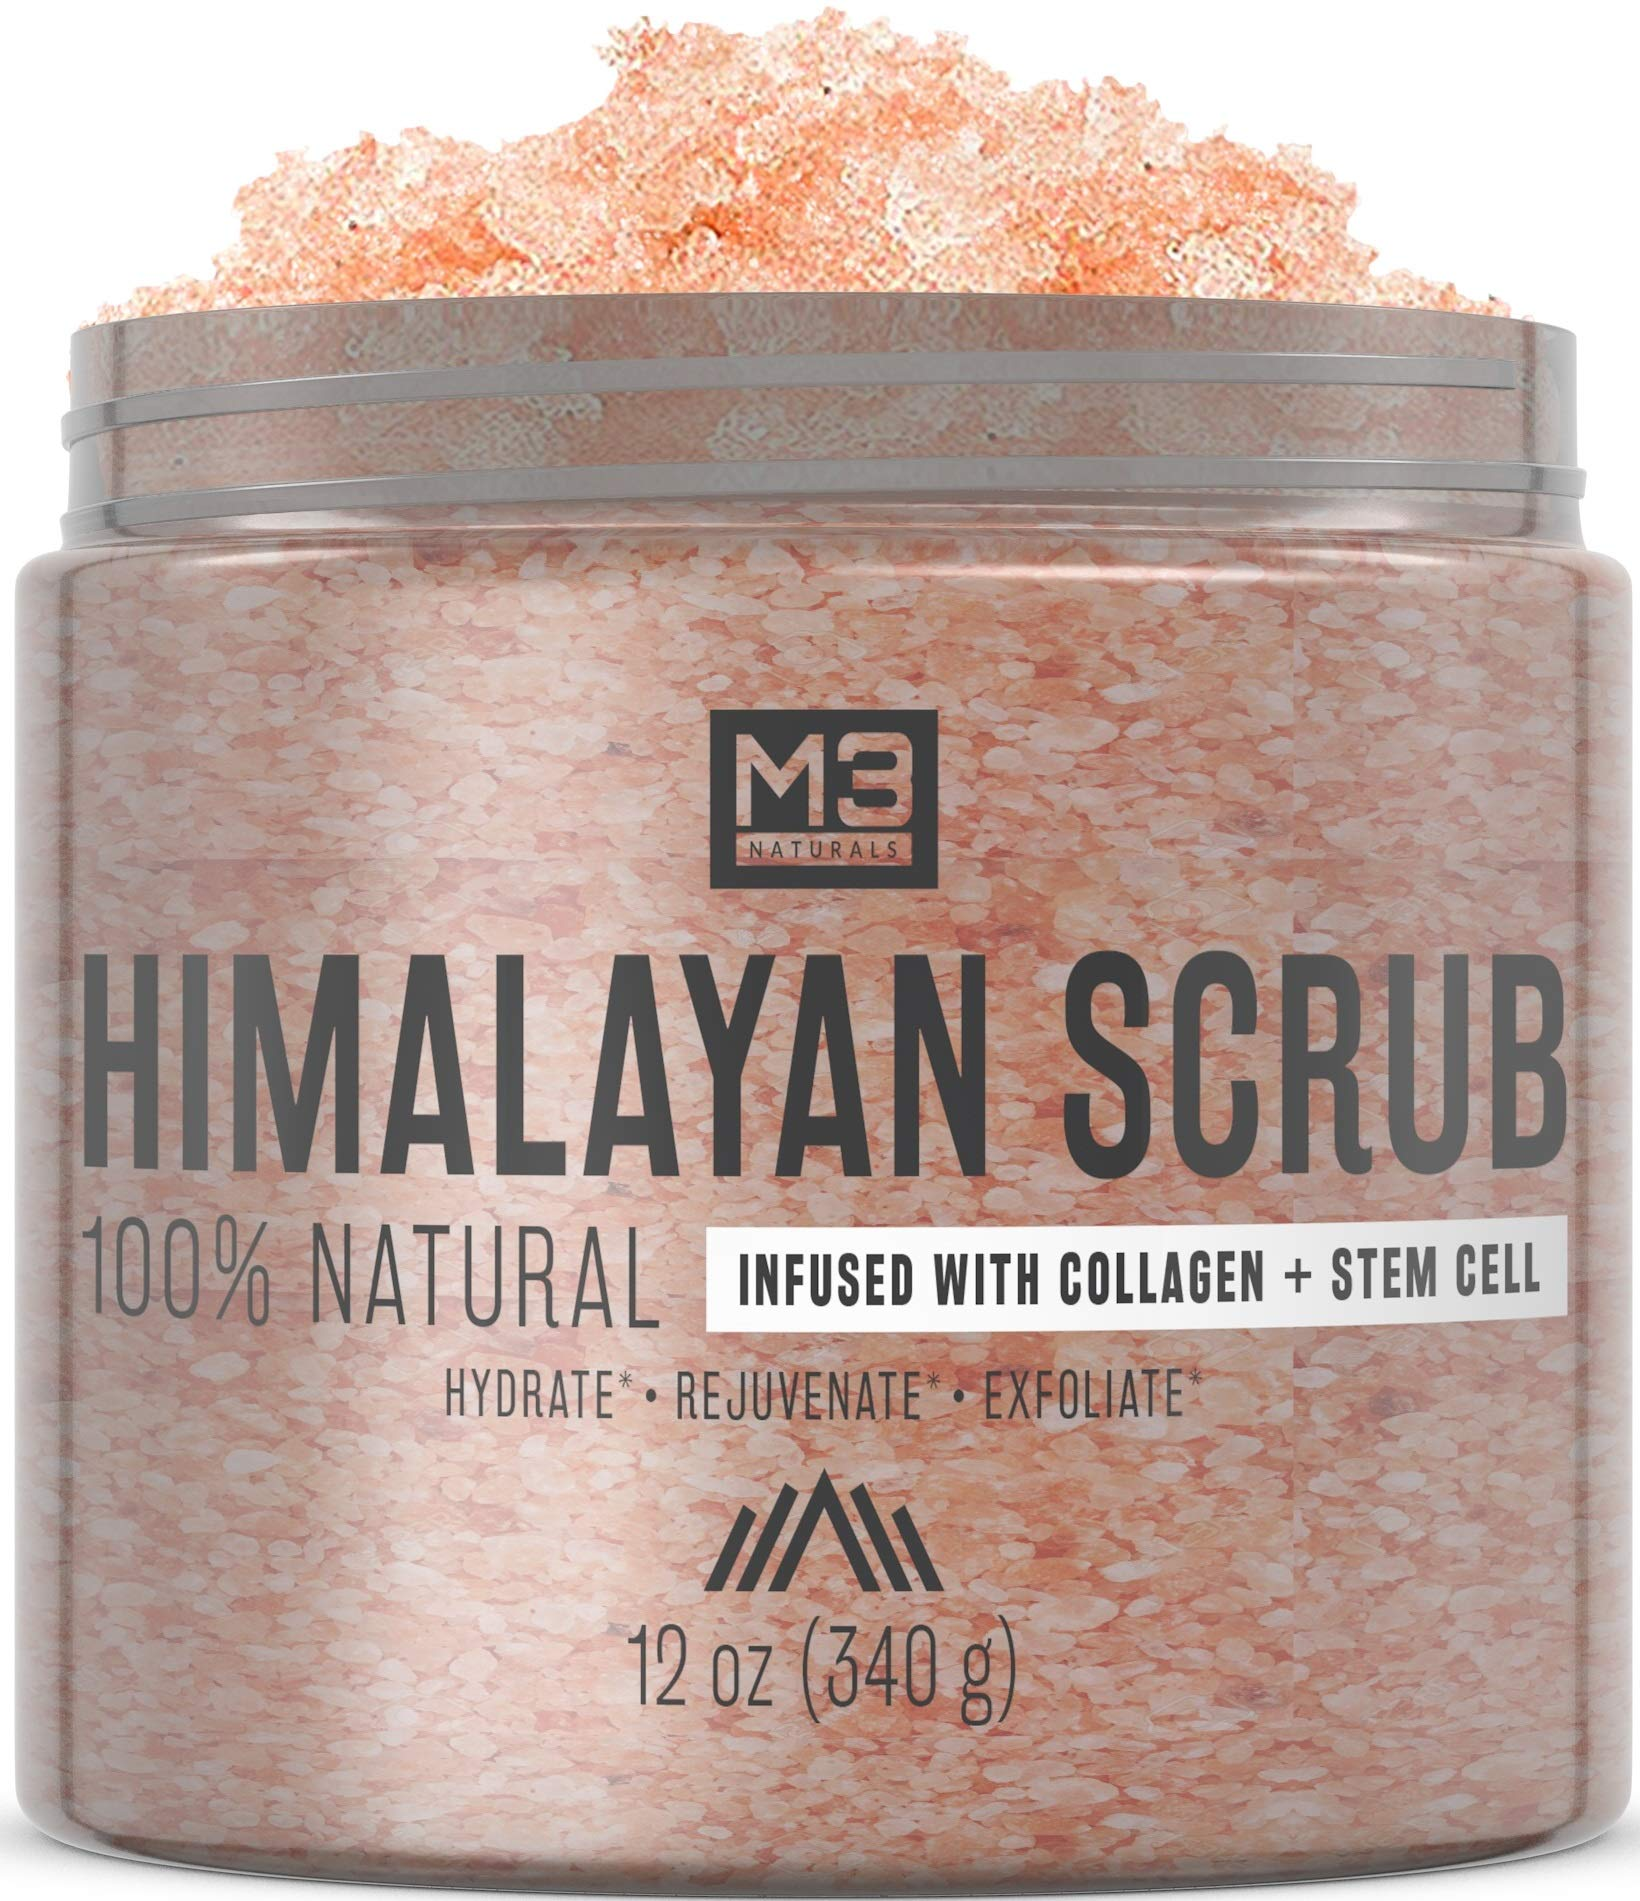 M3 Naturals Himalayan Salt Scrub Infused with Collagen and Stem Cell All Natural Body and Face Exfoliating Facial Wash Blackheads Acne Scars Pore Minimizer Exfoliator Anti Cellulite Souffle Skin Care by M3 Naturals